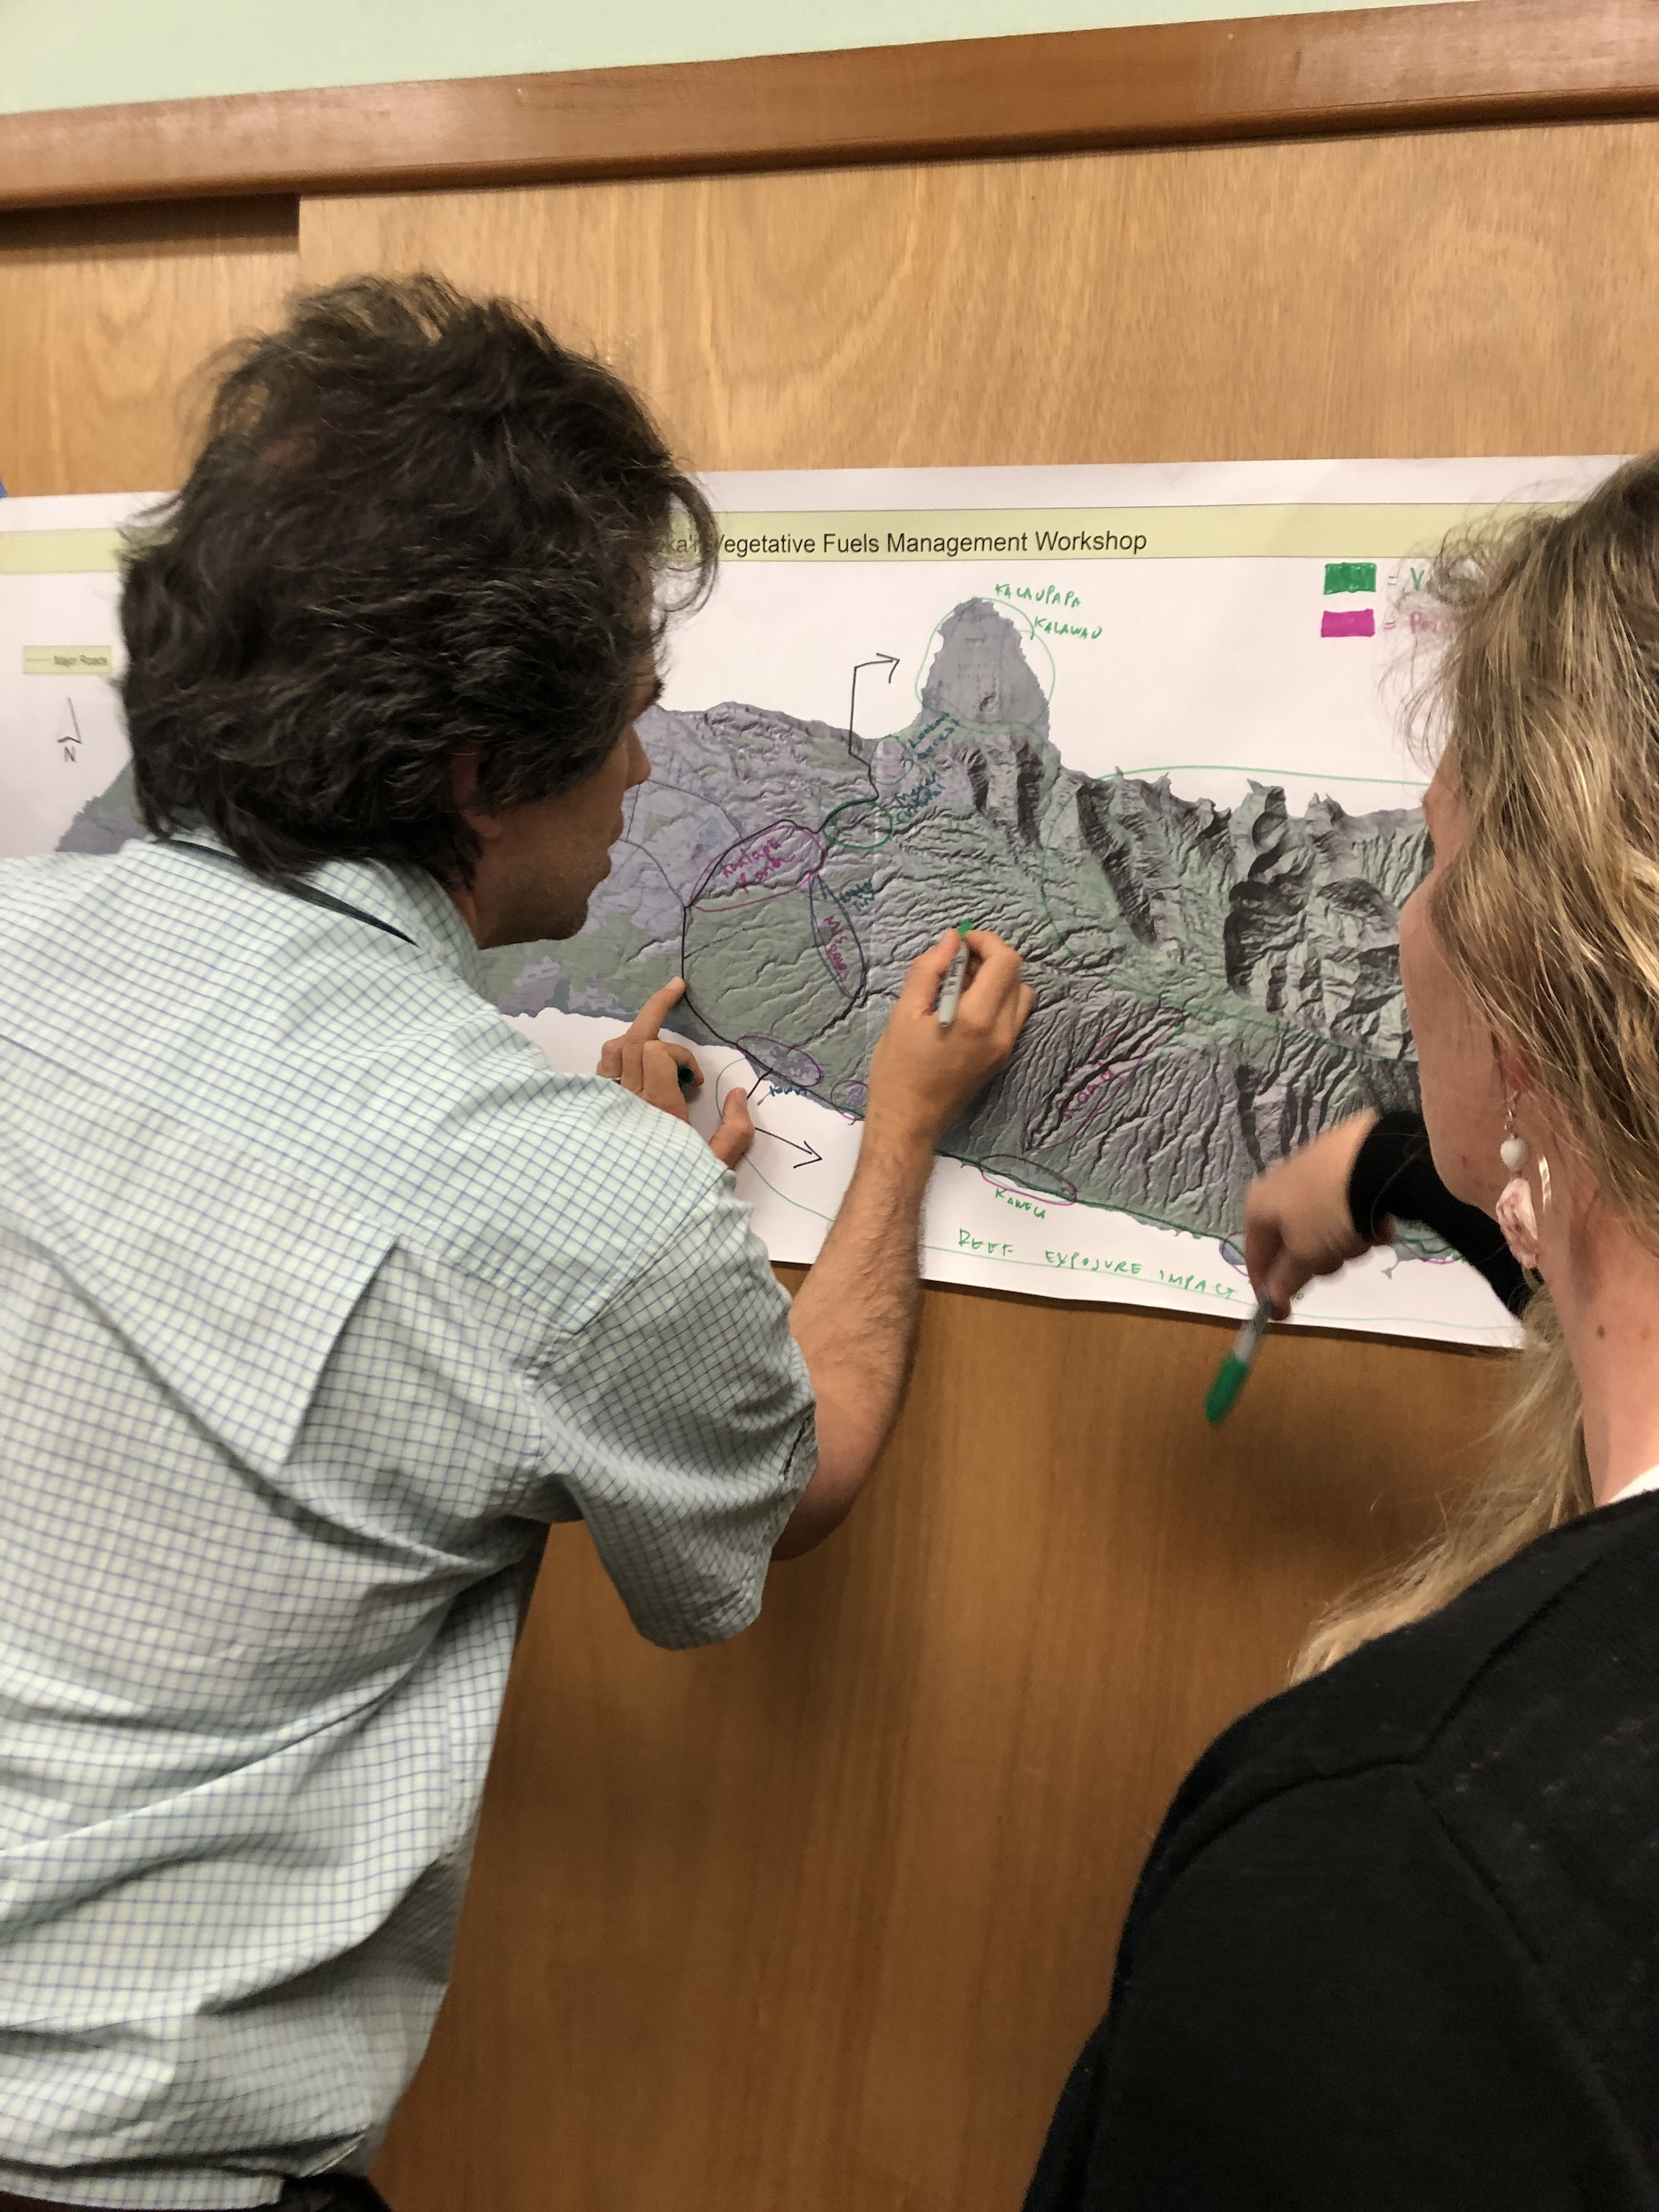 Molokai Vegetative Fuels Management Collaborative Action Planning and Mapping Workshop_4_2_2019_18.JPG